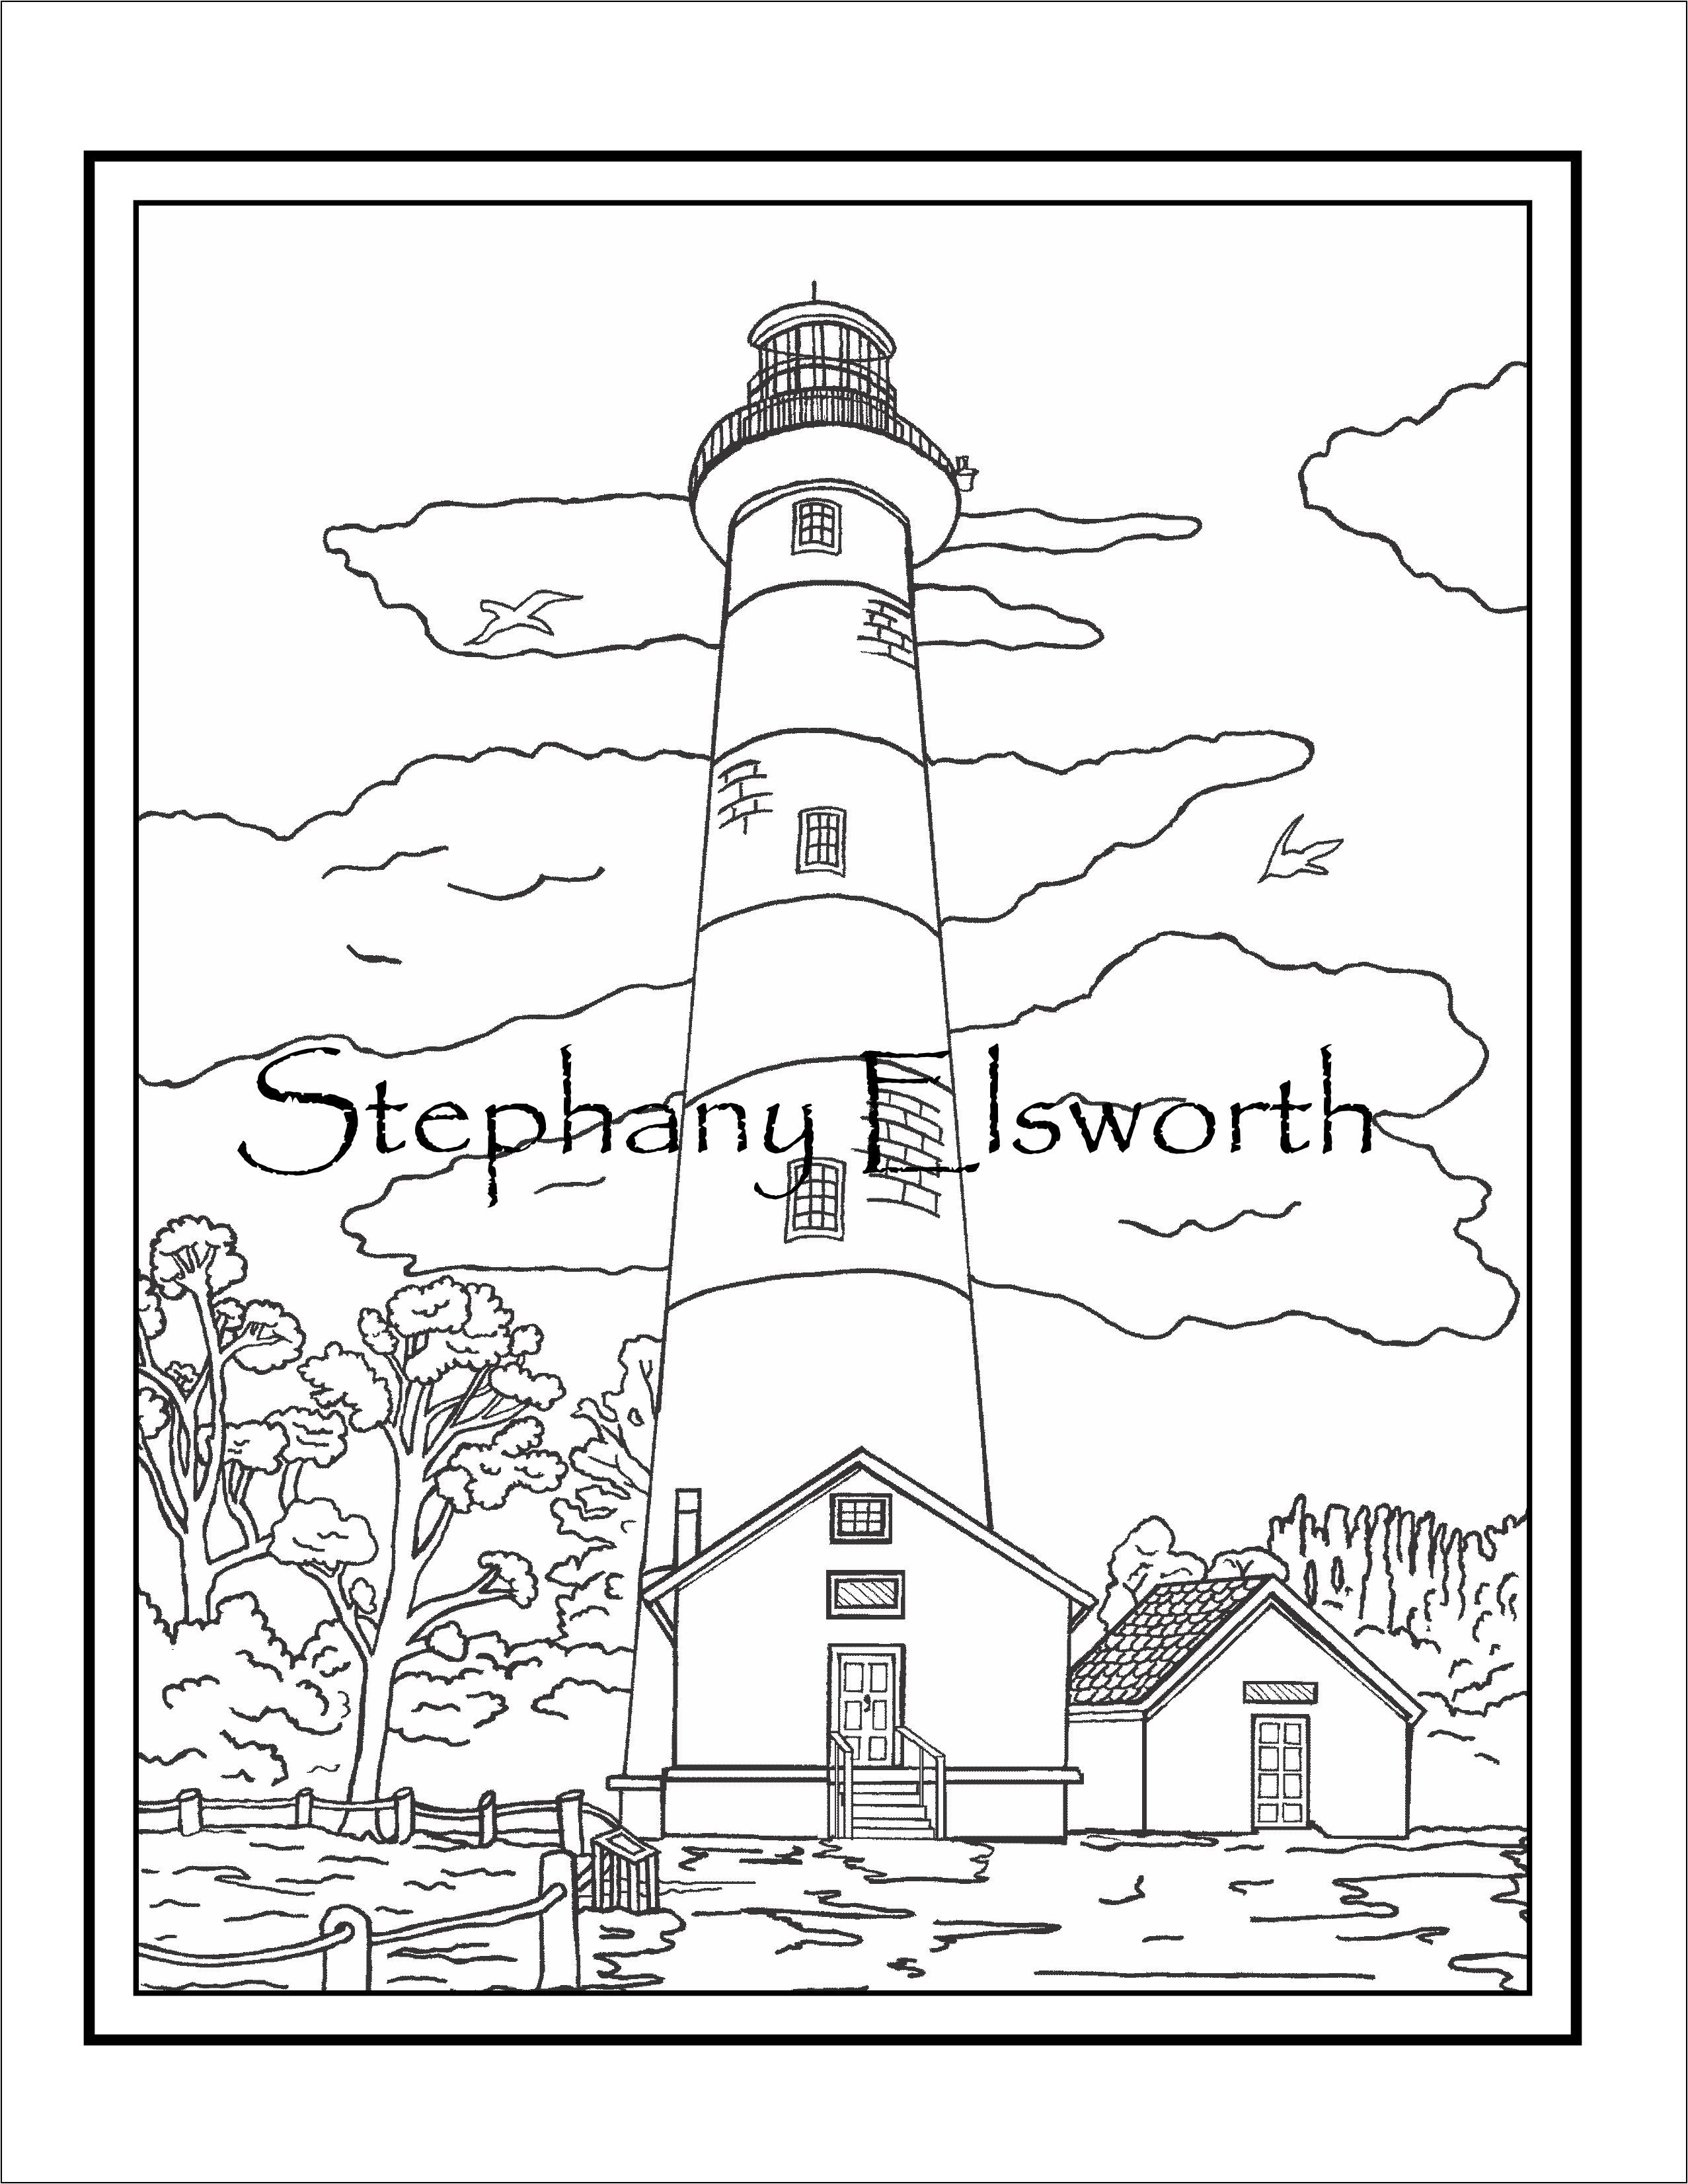 Assateague Island Lighthouse Free Instant Download Pdf Printable Coloring Page Art And Travels Printable Coloring Pages Lilac Painting Coloring Pages